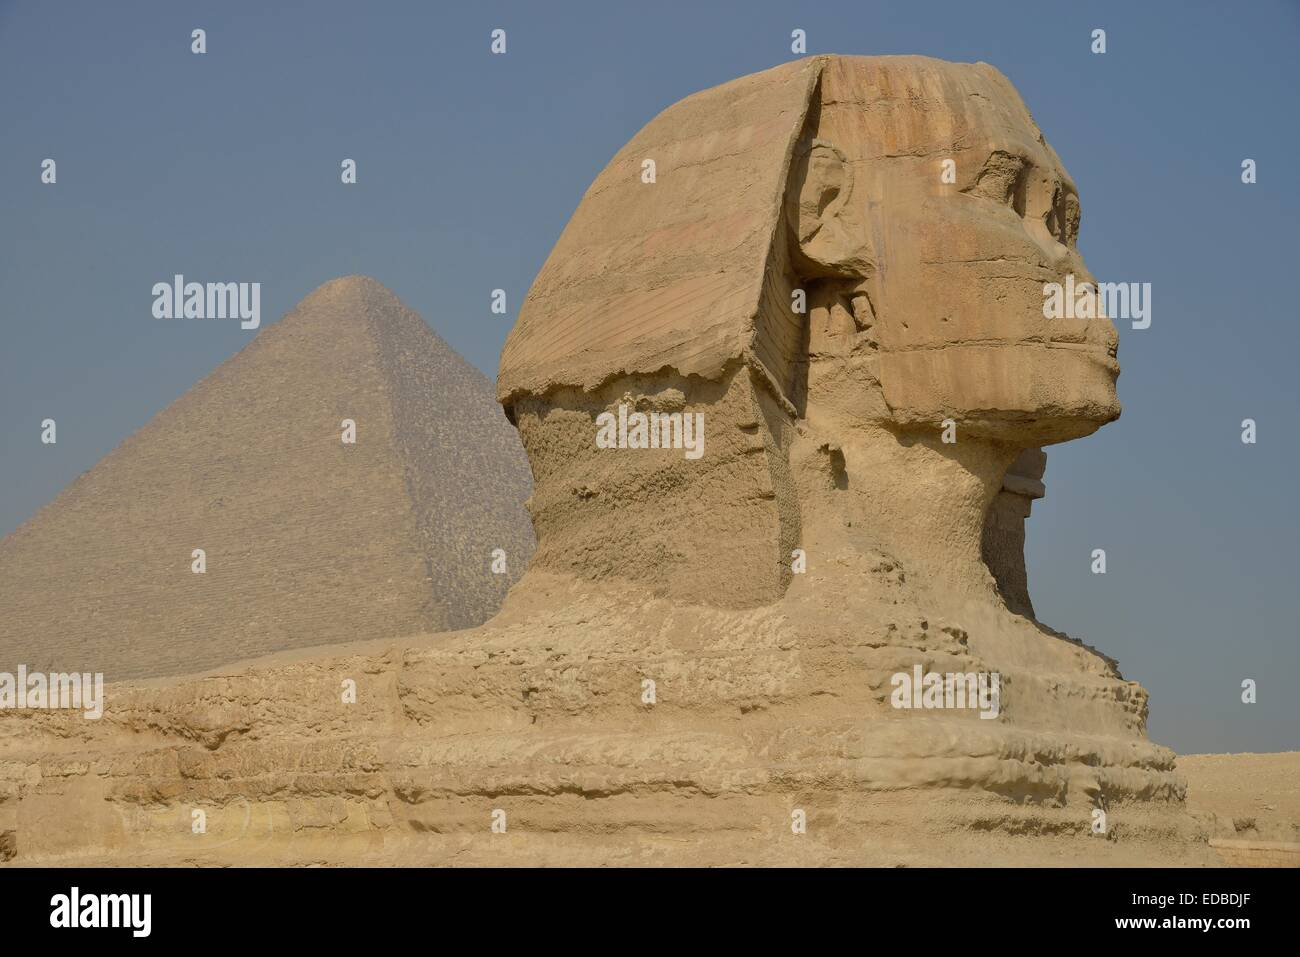 Sphinx or Great Sphinx of Giza, lion with a human head, built in the 4th Egyptian dynasty around 2700 BC, in front - Stock Image